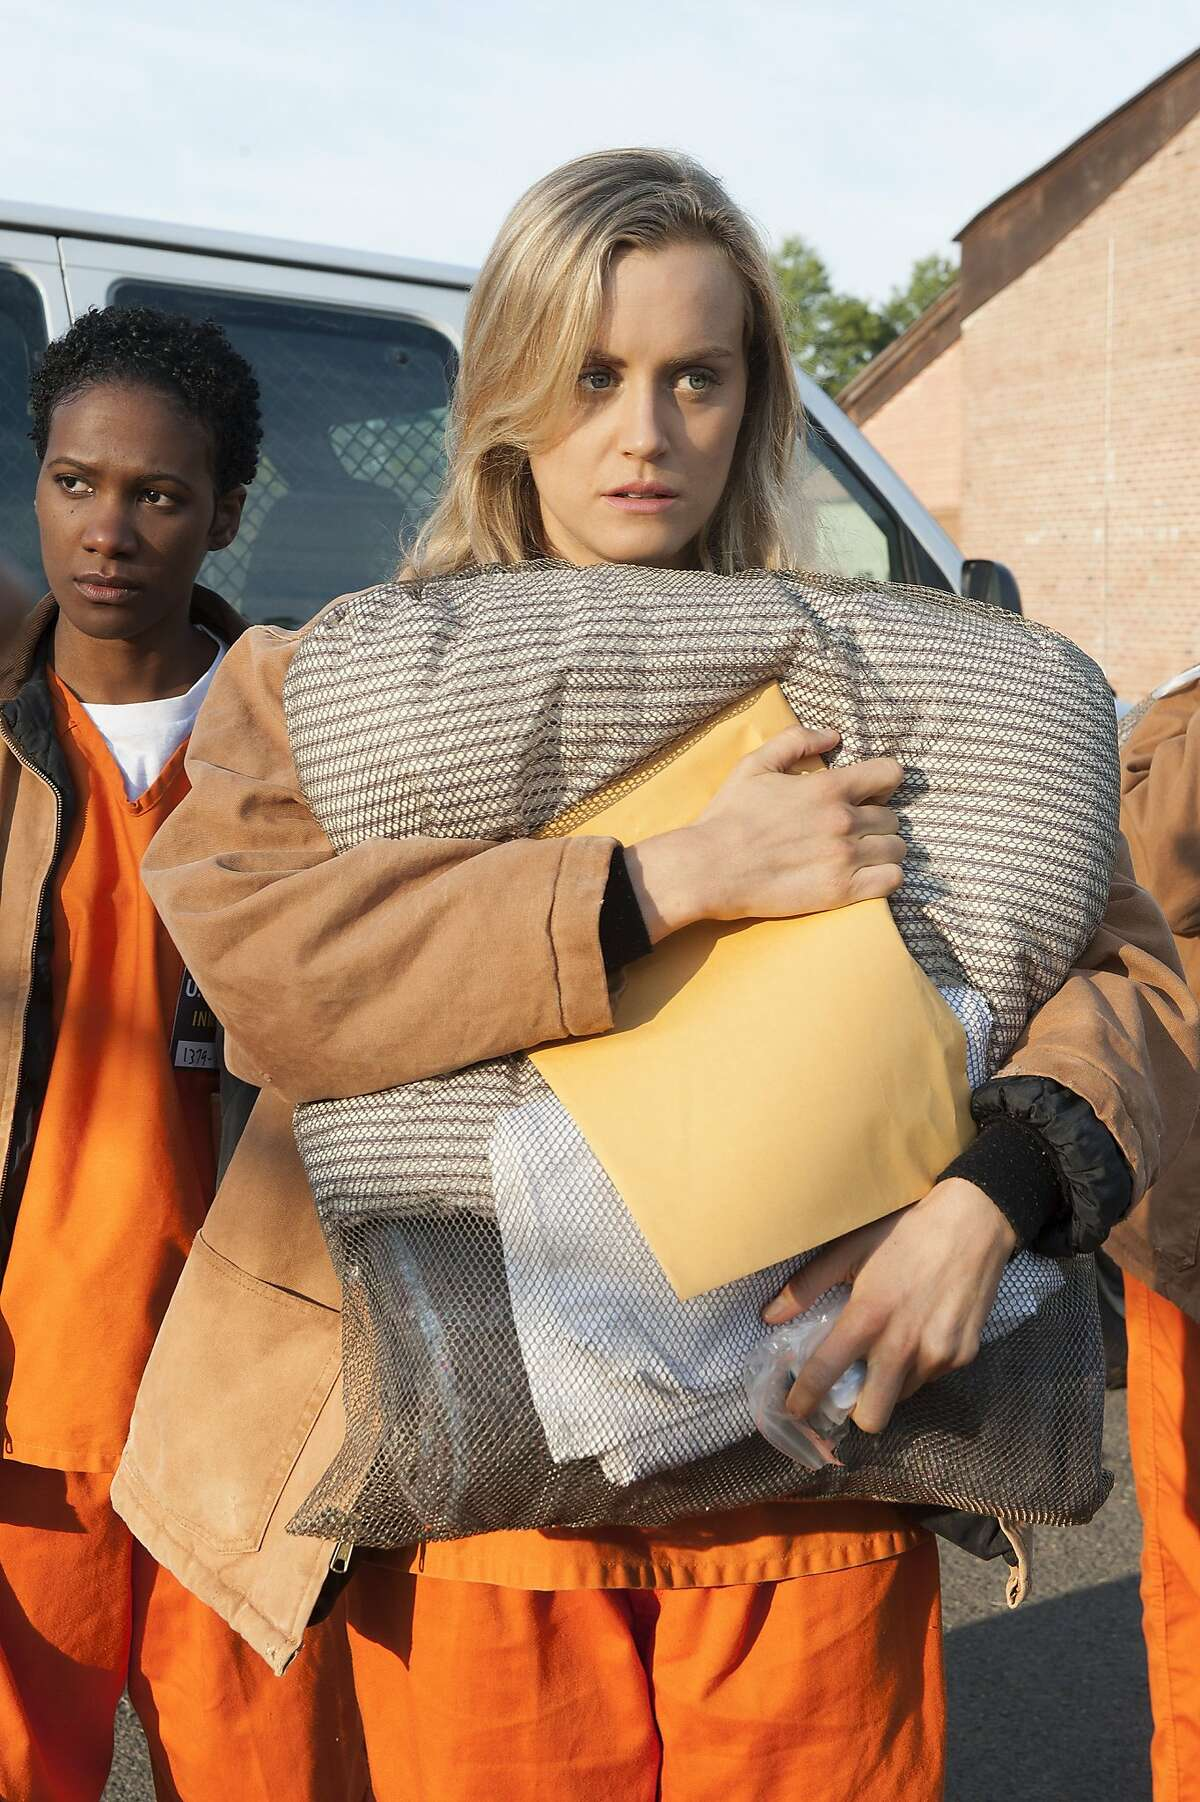 Taylor Schilling in a scene from